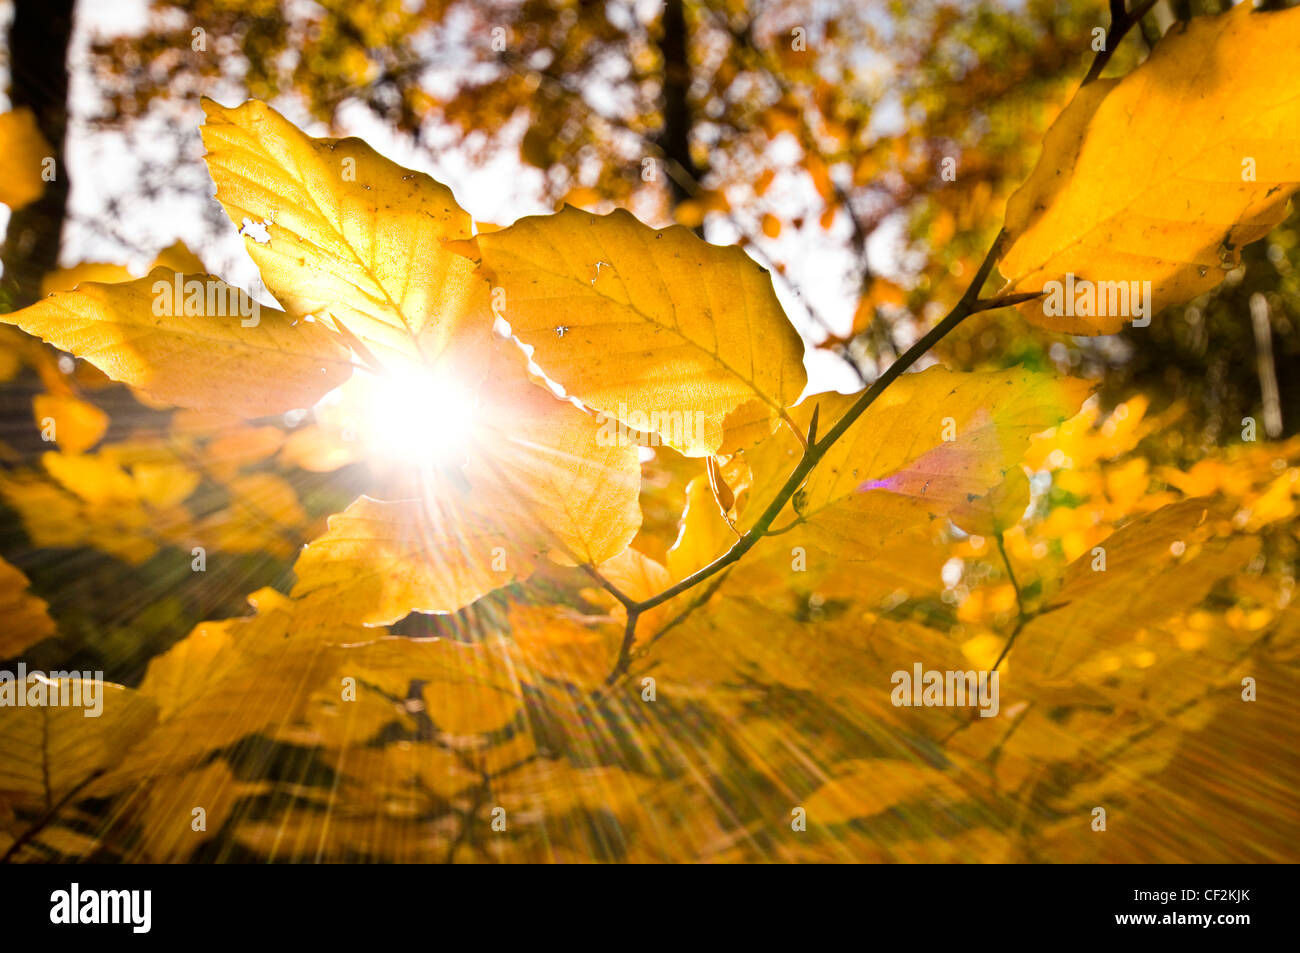 Sun shining through the golden leaves of a beech tree in Autumn. - Stock Image